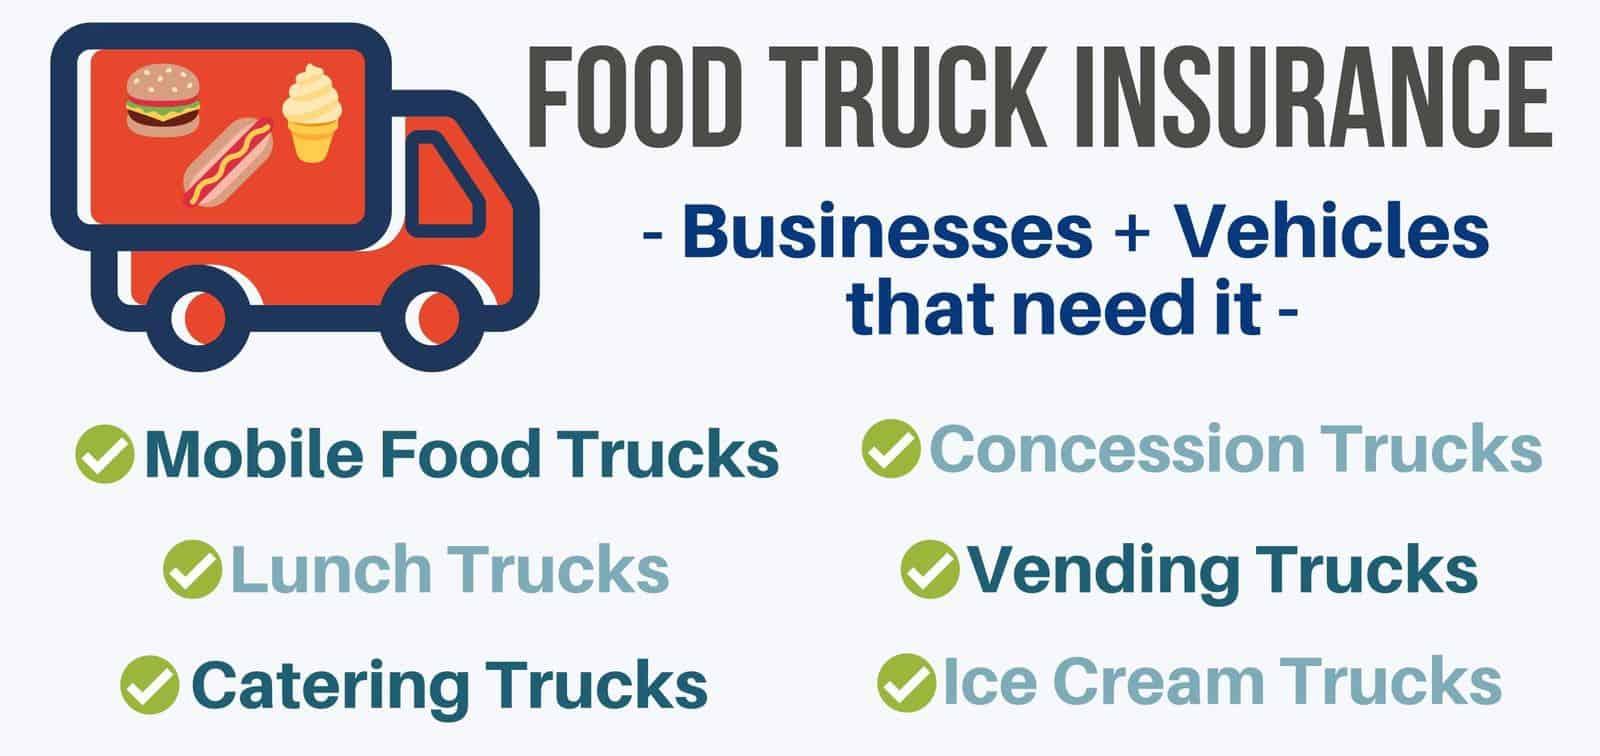 Food truck Insurance- Business that need it